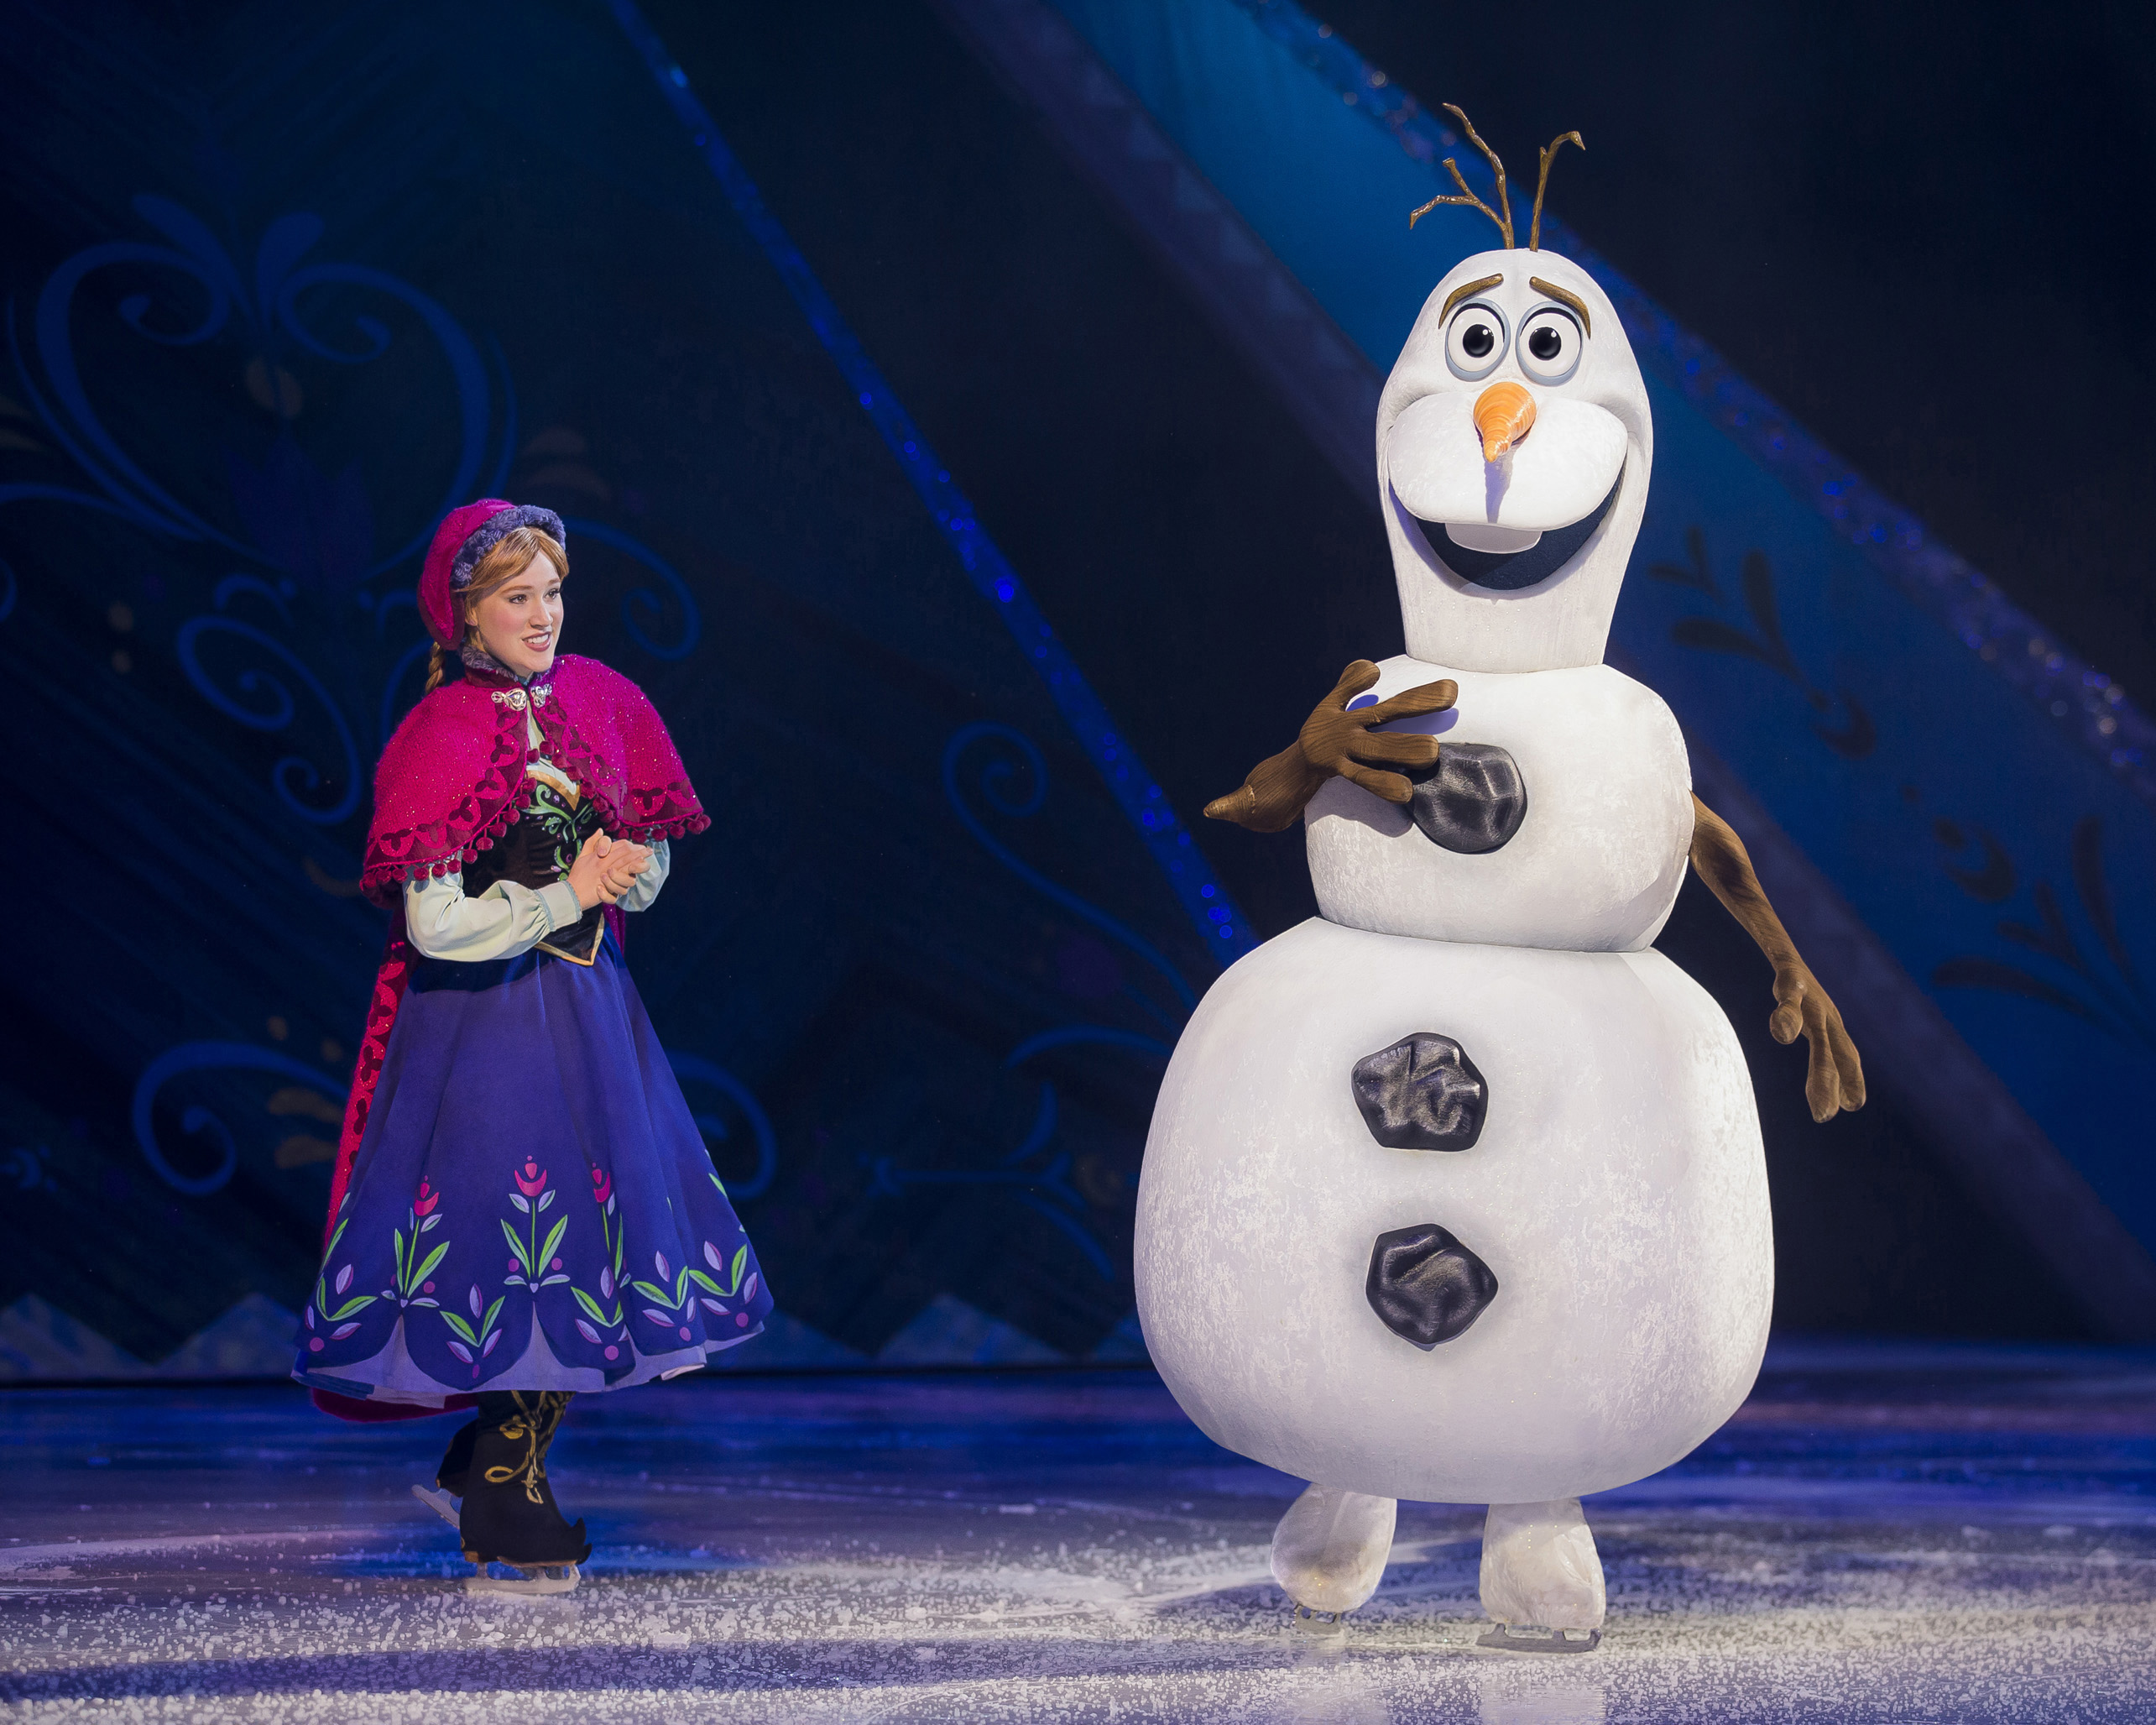 Disney On Ice presents Worlds of Enchantment Anna & Olaf from Disney's Frozen. Photo credit: ©Disney